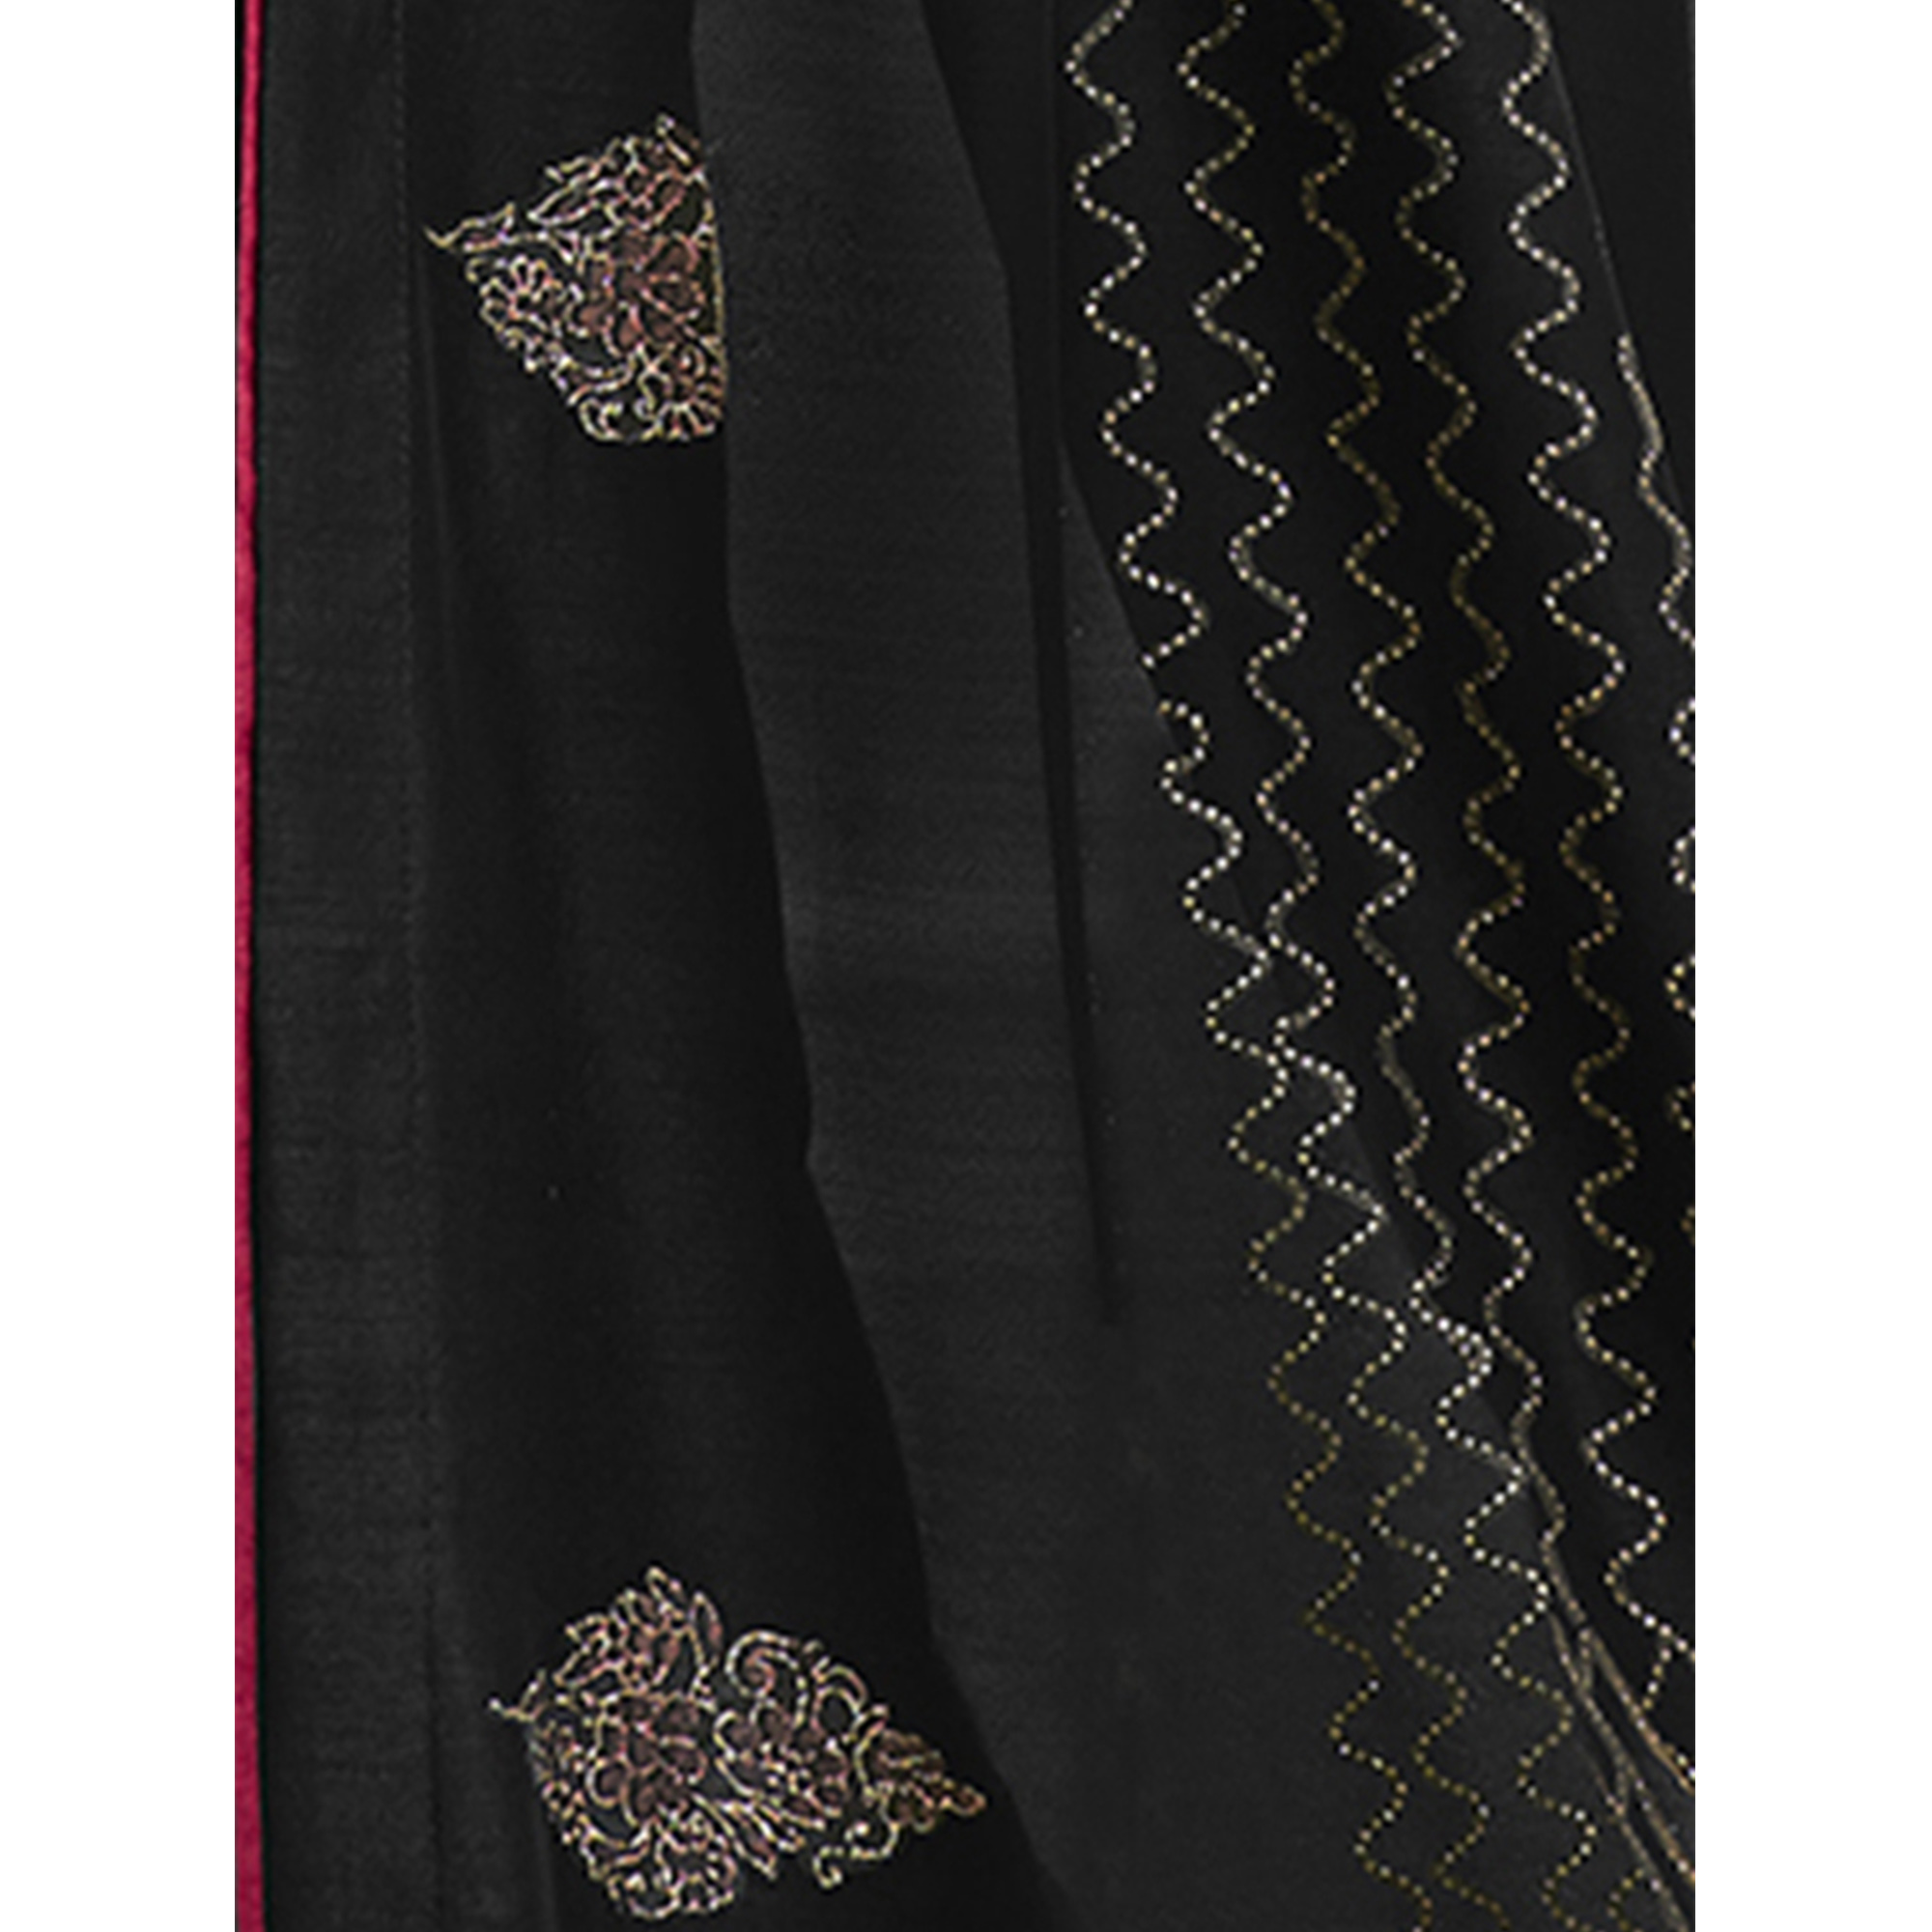 Lovely Black Colored Party Wear Embroidered Chanderi Silk Saree